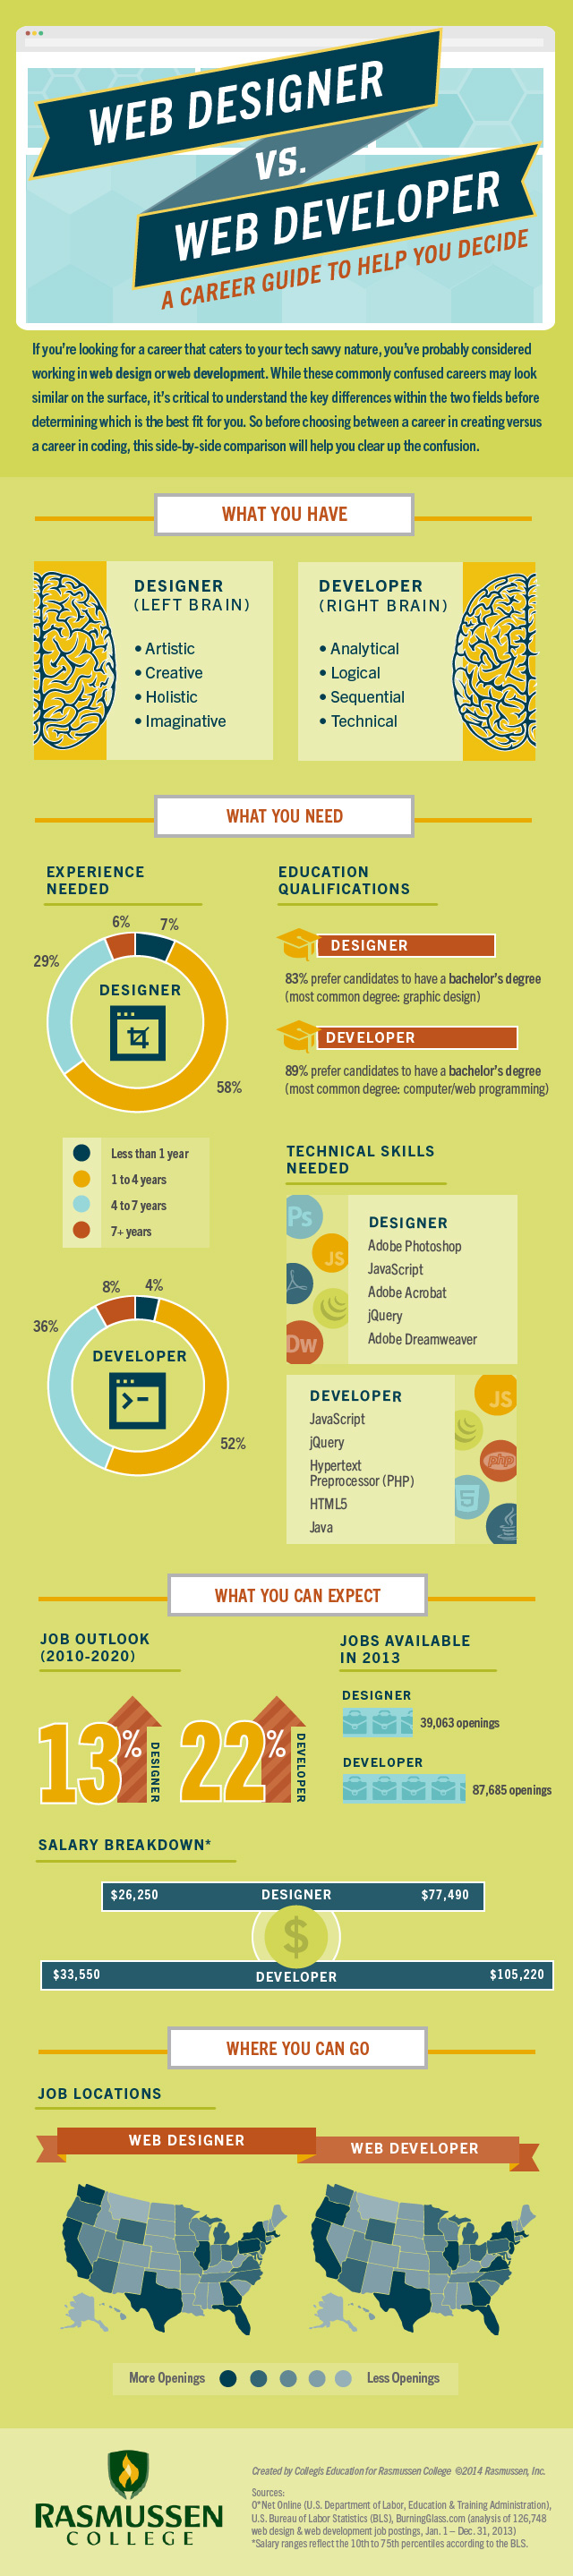 Web Designers Are Not Web Developers